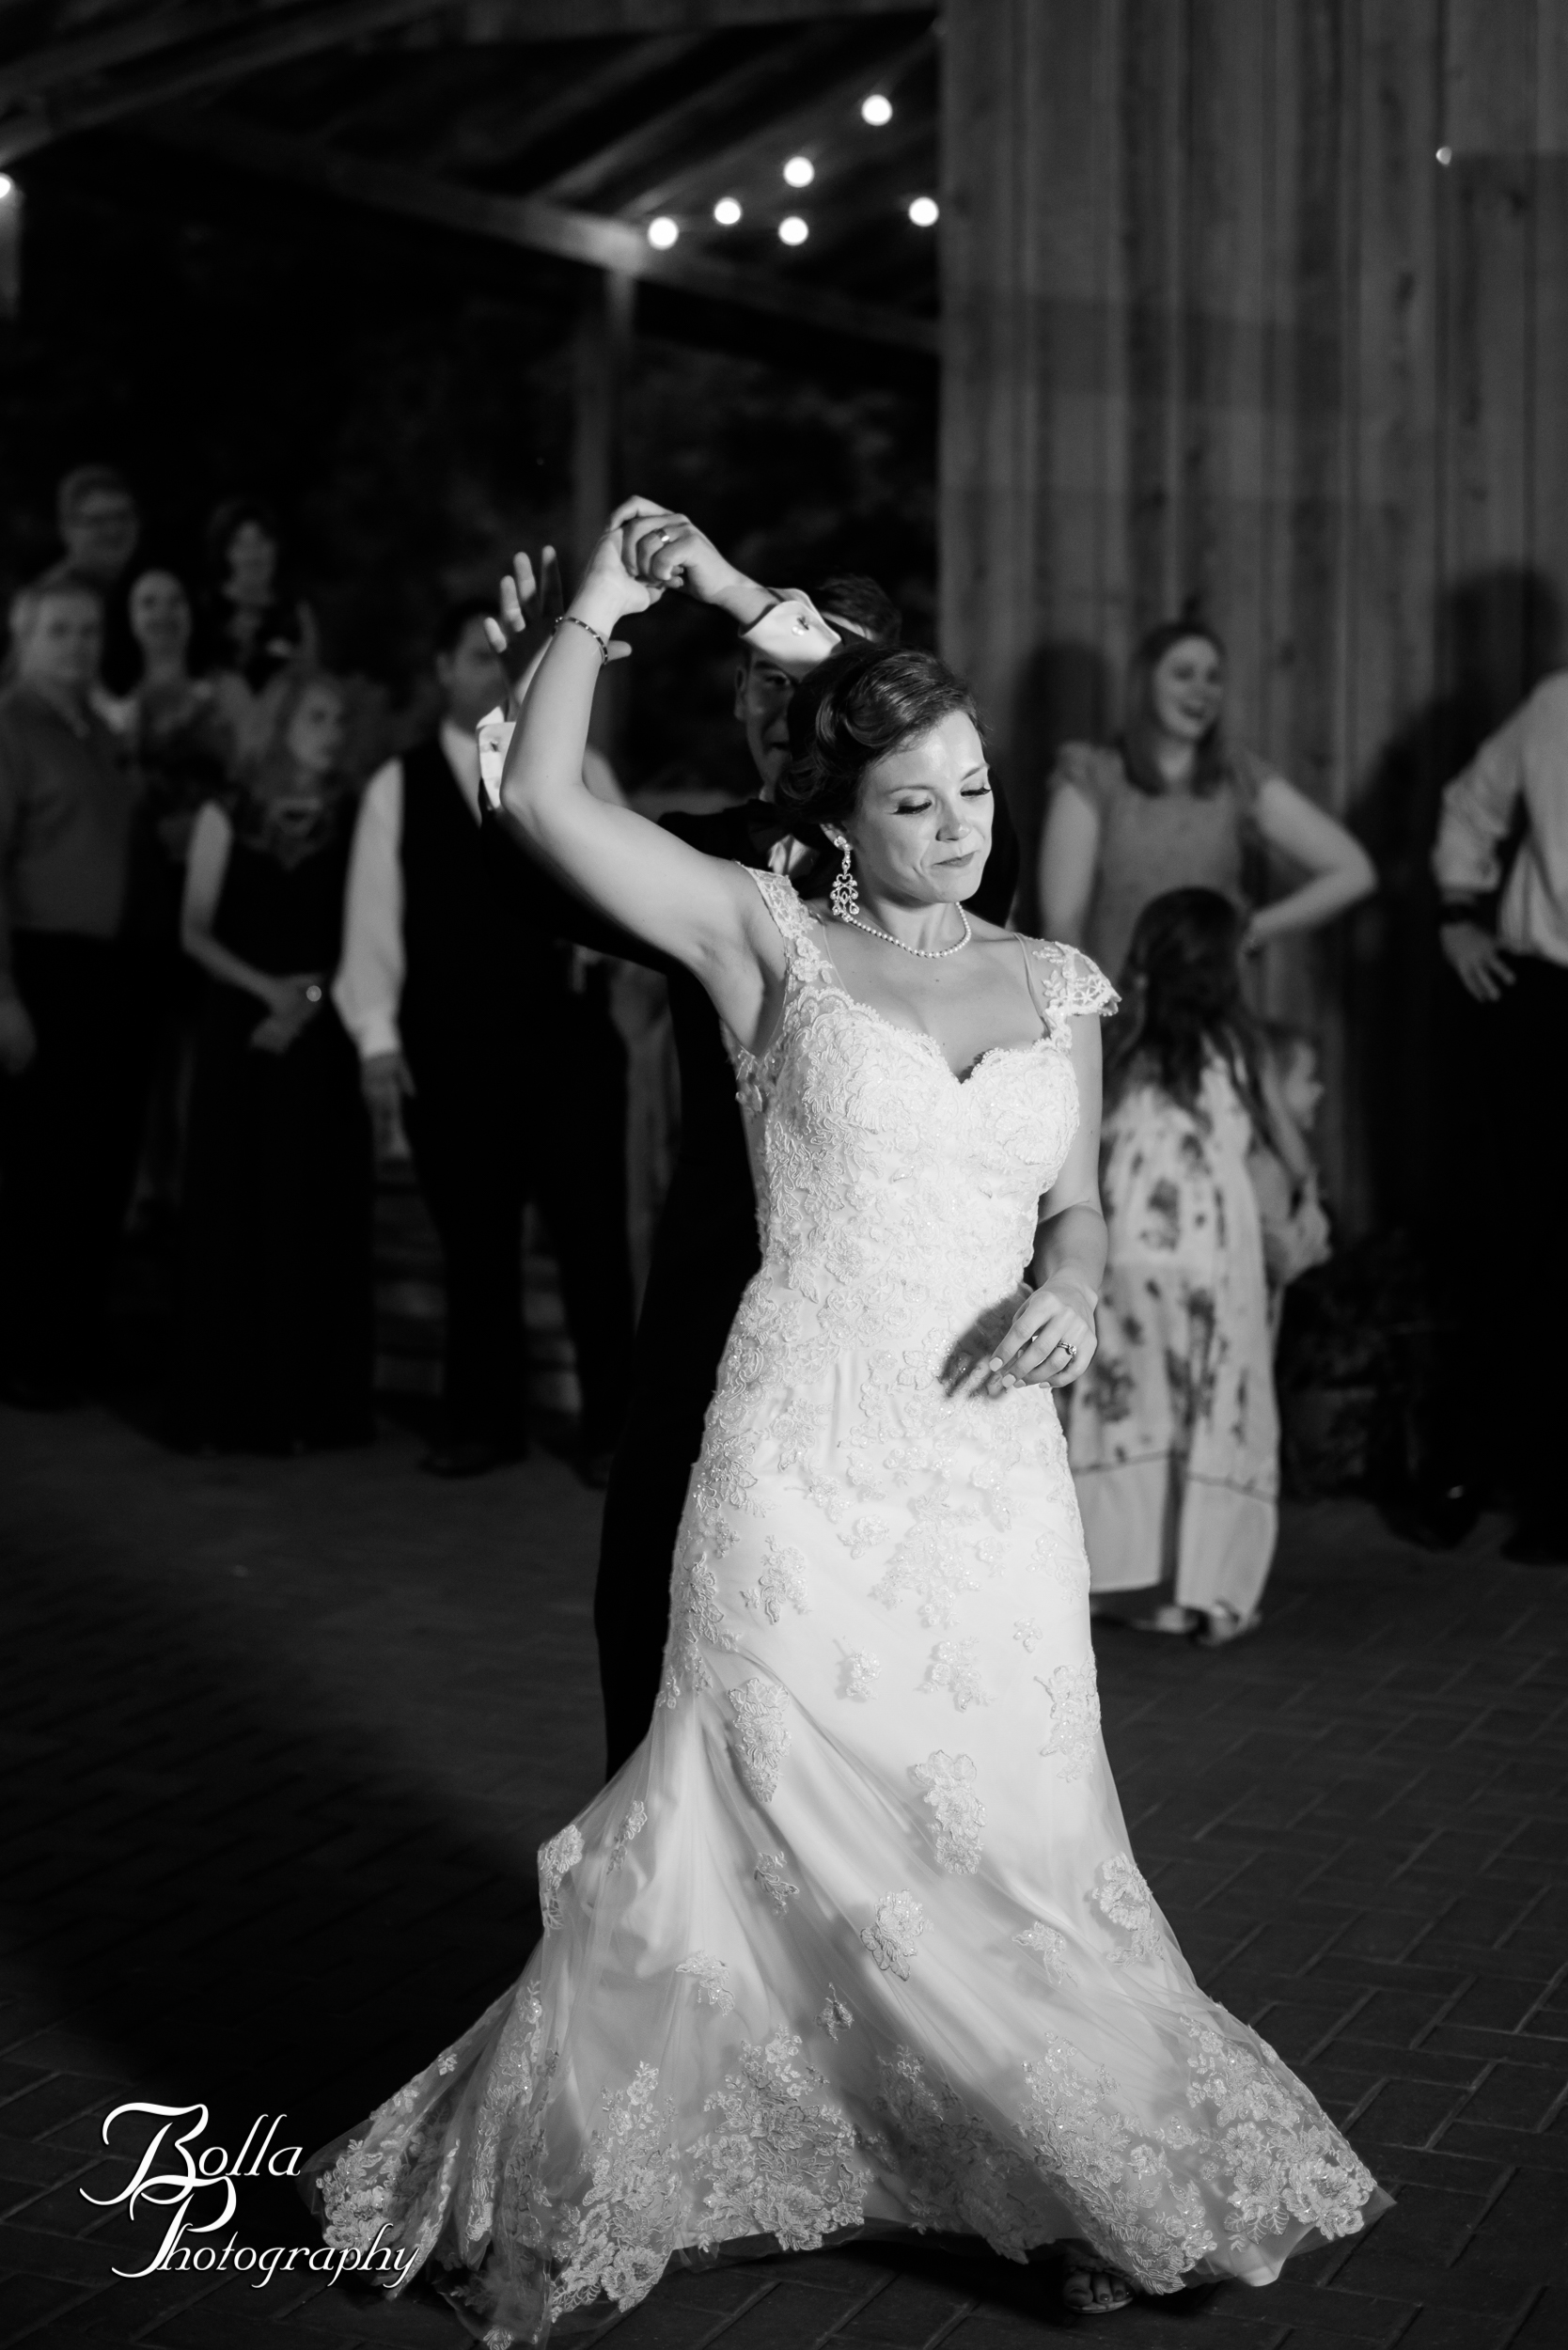 Bolla_photography_edwardsville_wedding_photographer_st_louis_weddings_Chaumette_winery_Mikusch-0567.jpg